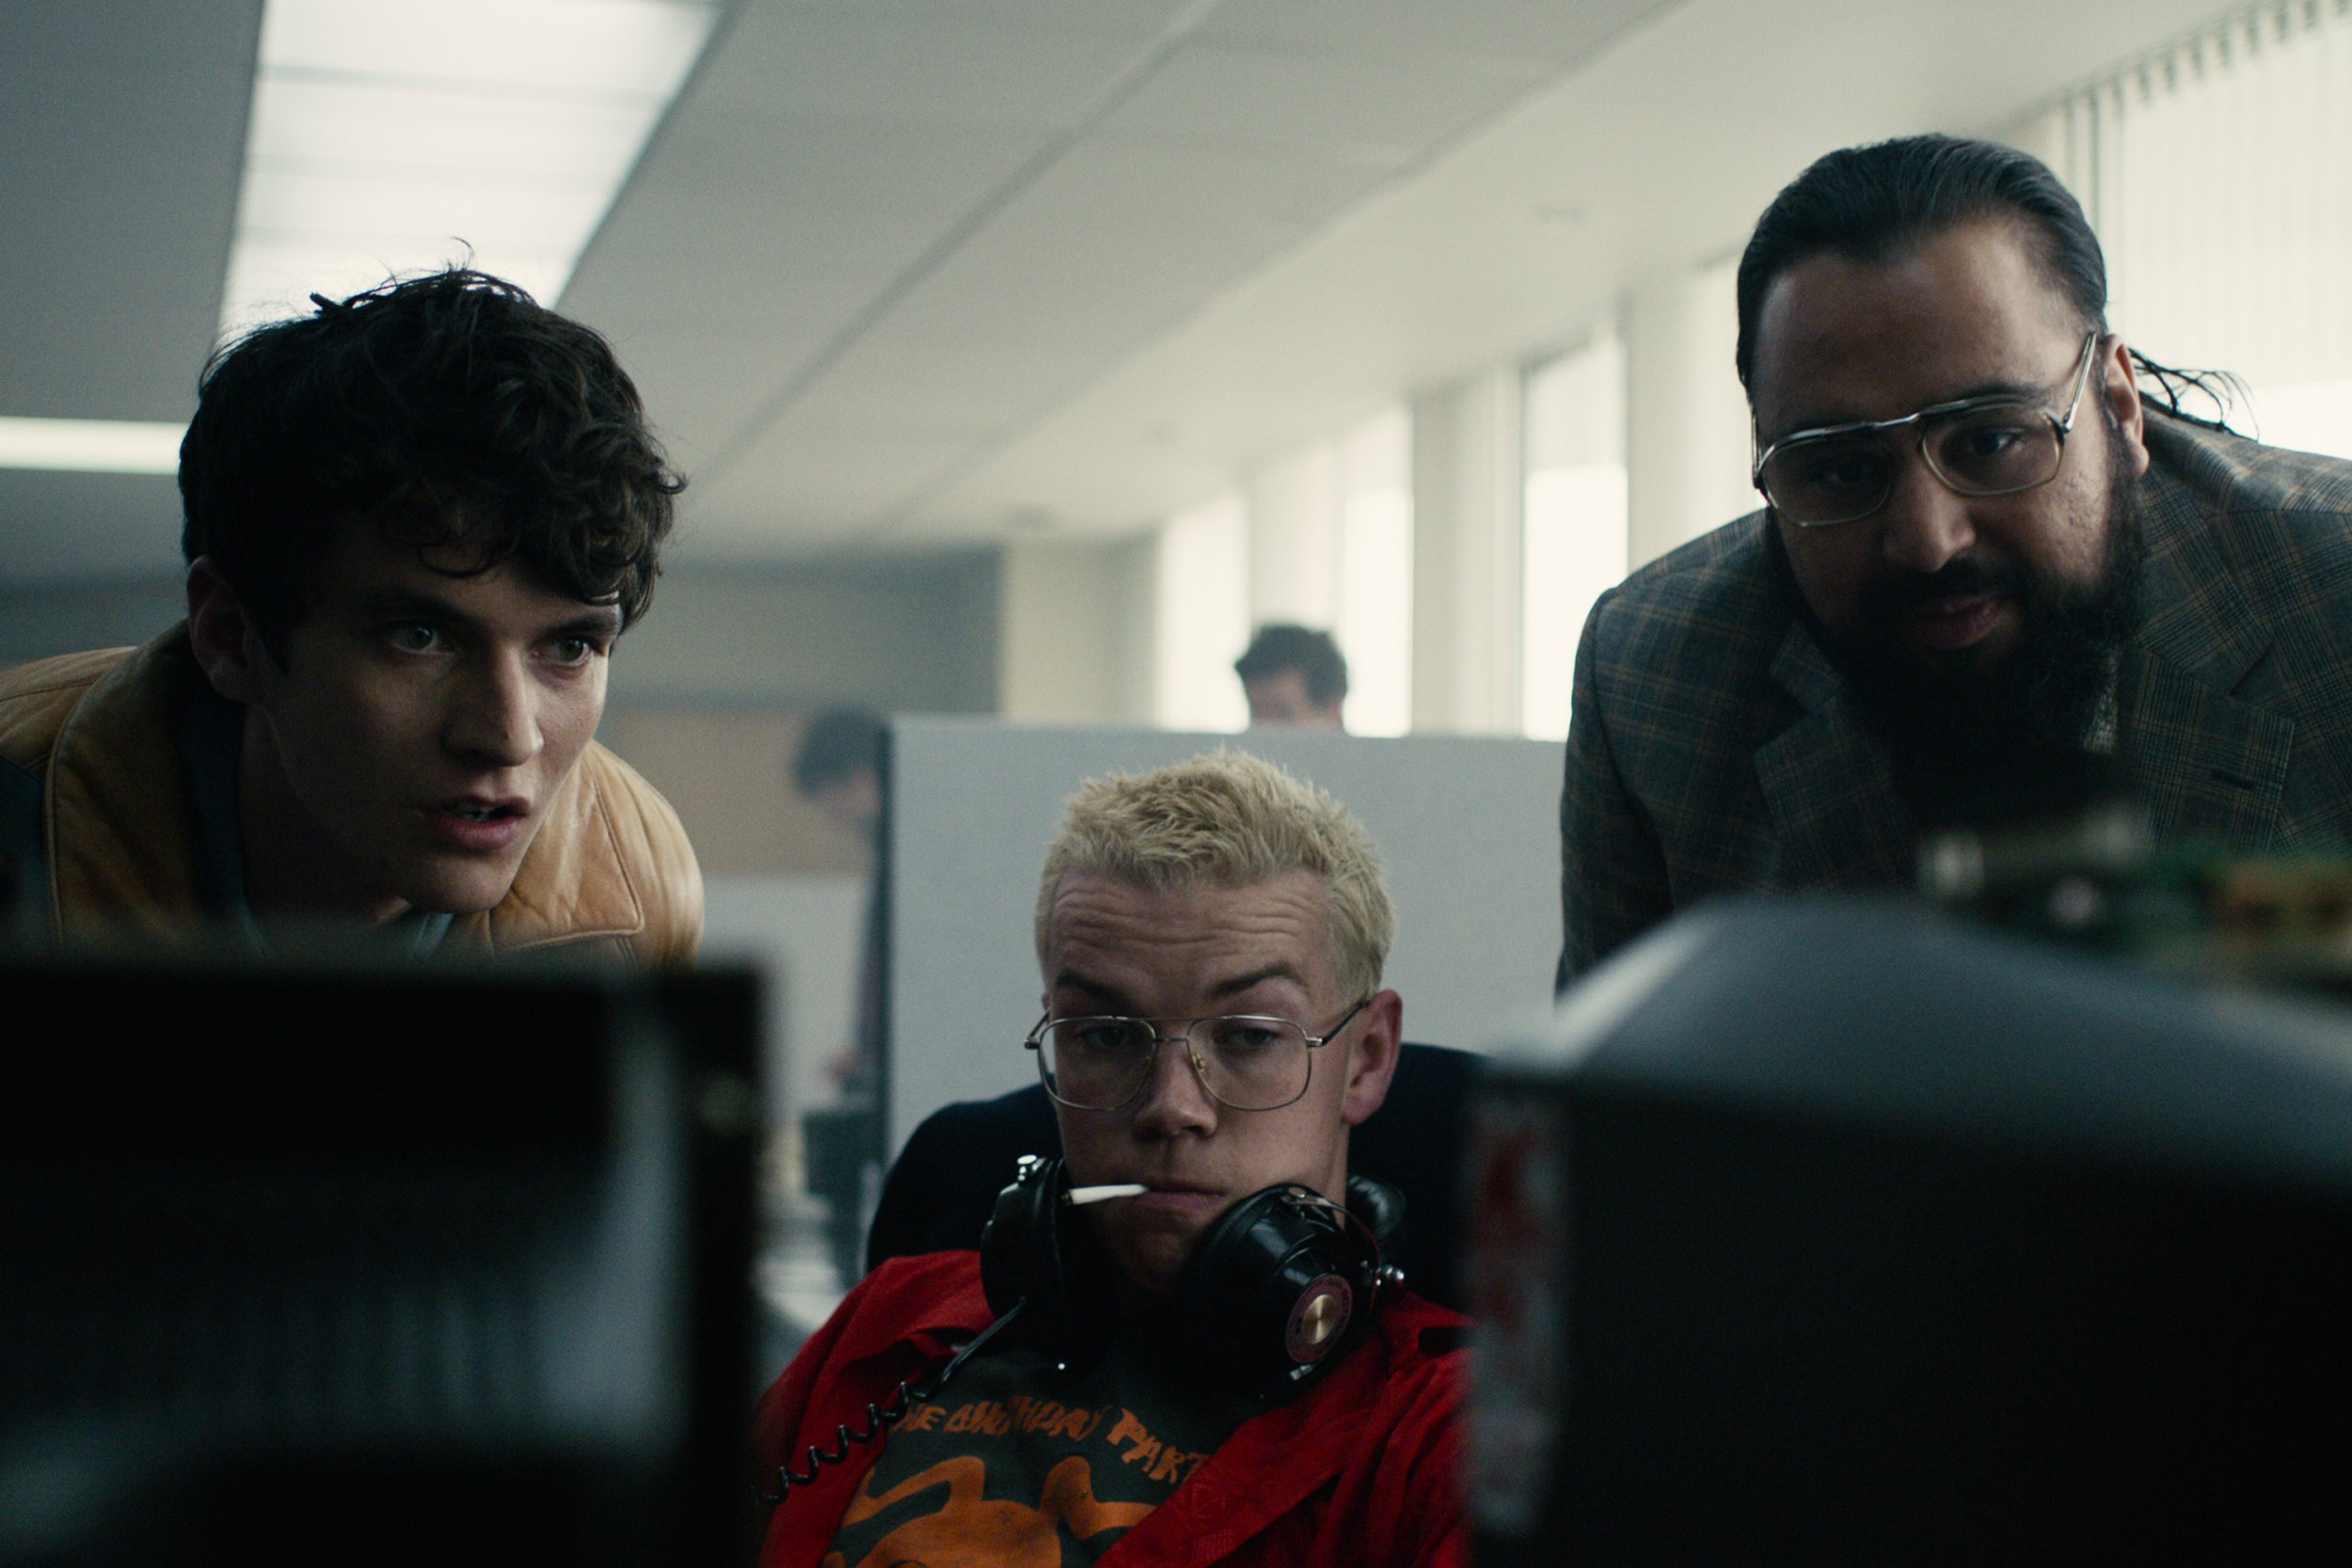 Black Mirror's Charlie Brooker has more interactive ideas up his sleeve following Bandersnatch success